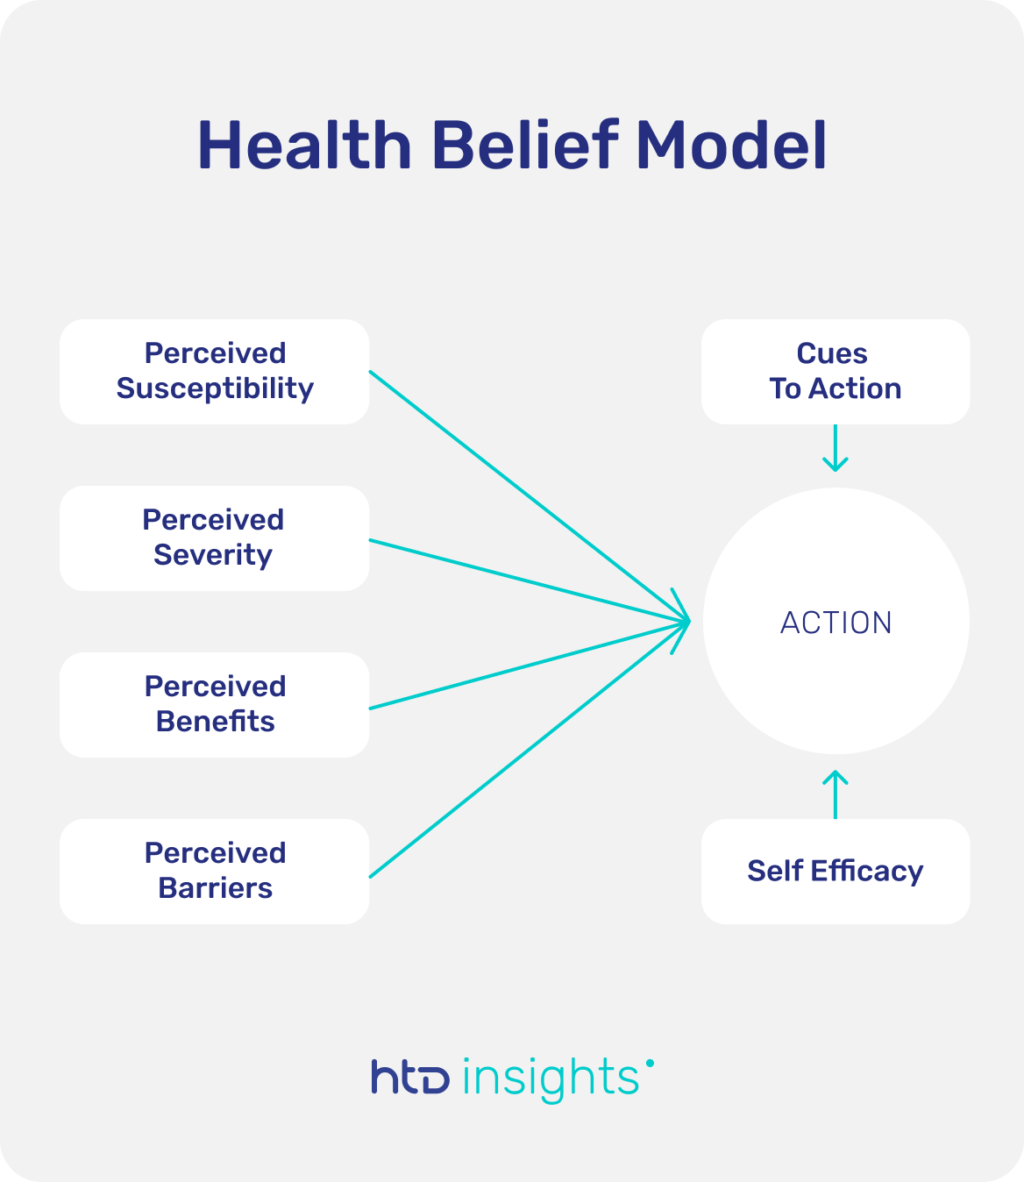 Graphical representation of the health belief model